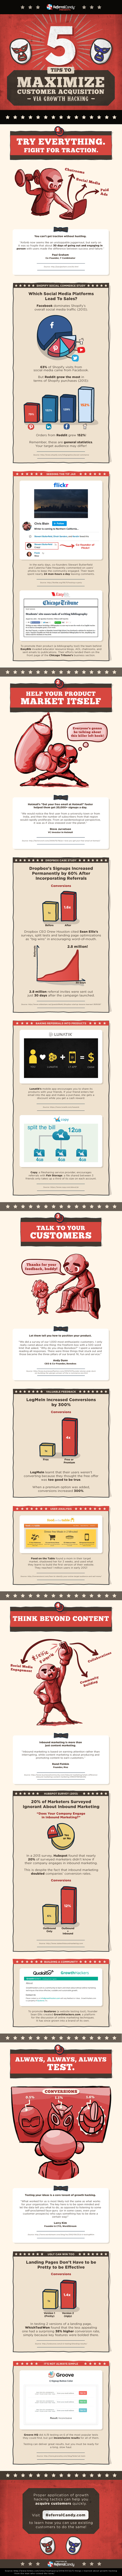 5 Tips To Maximize Customer Acquisition Via Growth Hacking [Infographic]